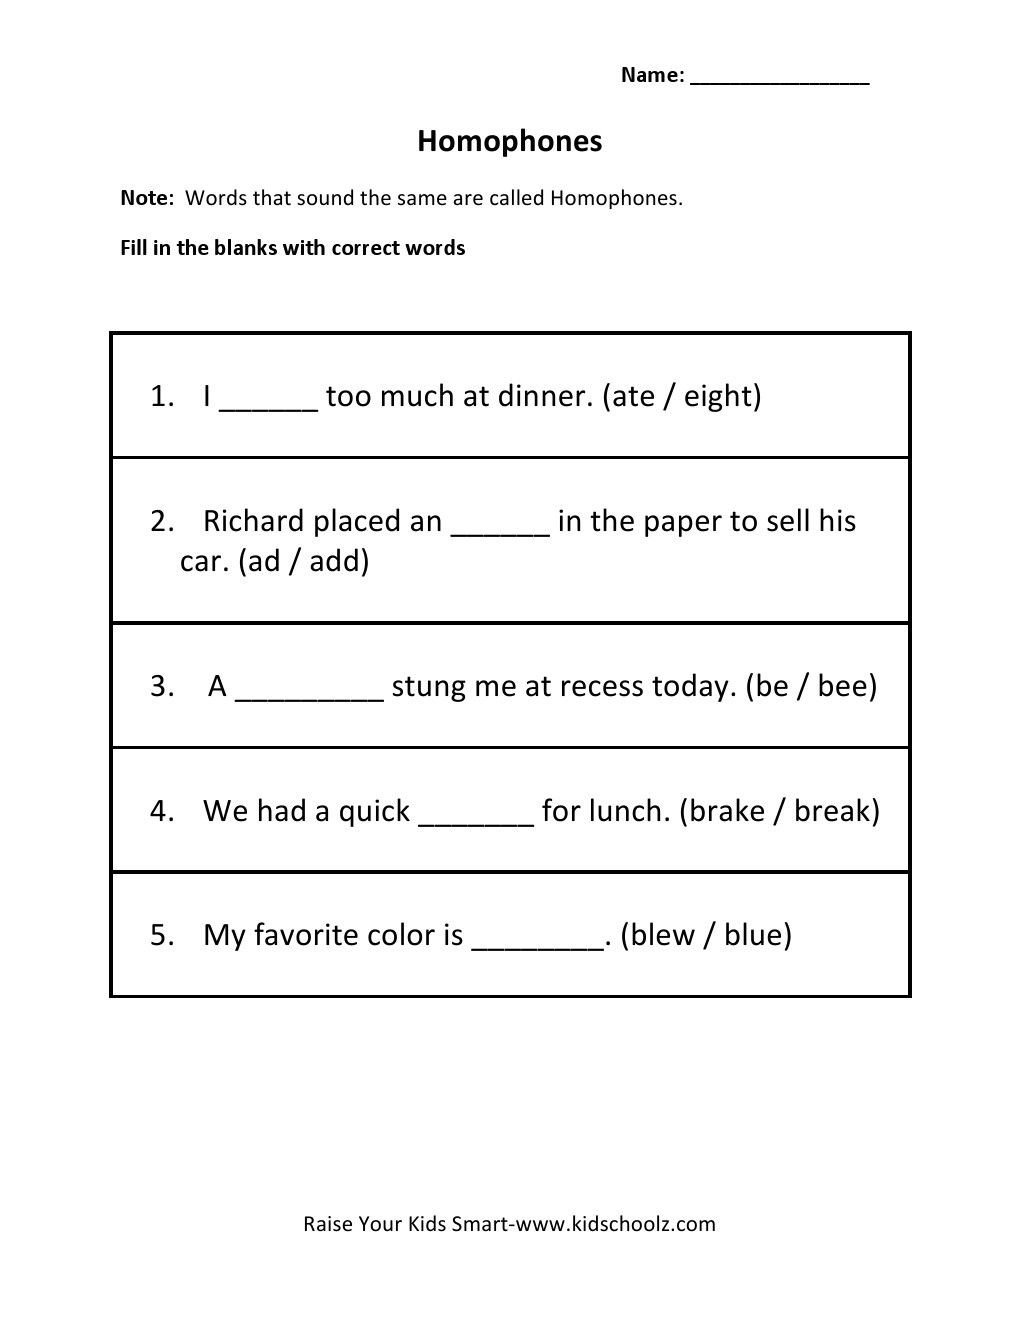 Homophones Worksheet 4th Grade Wp Content 2014 09 Homophones 1